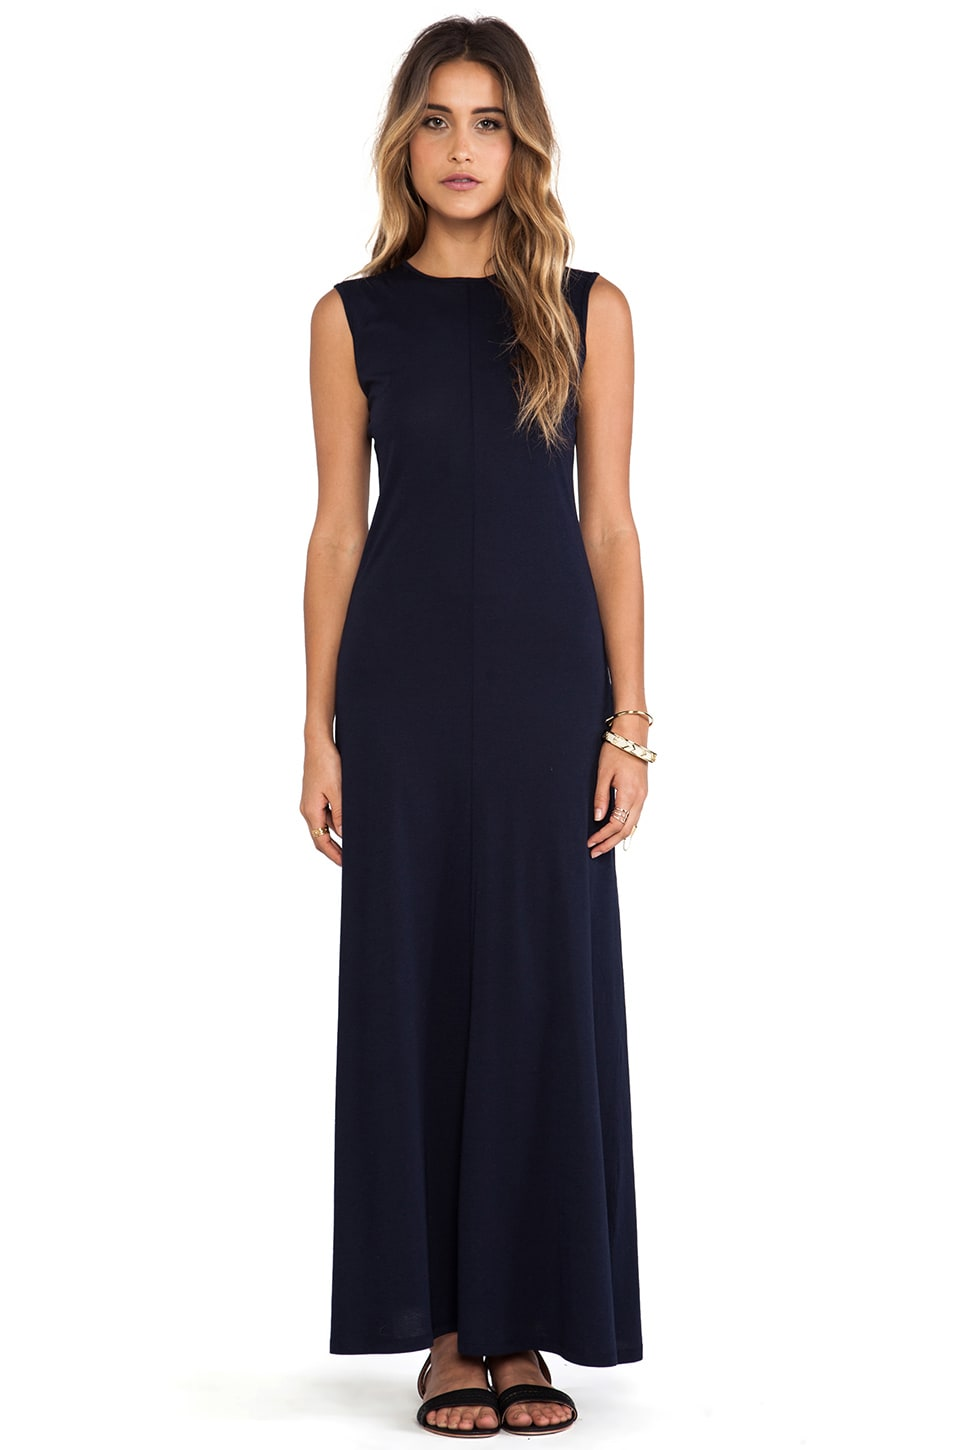 DemyLee Gwyneth Dress in Navy